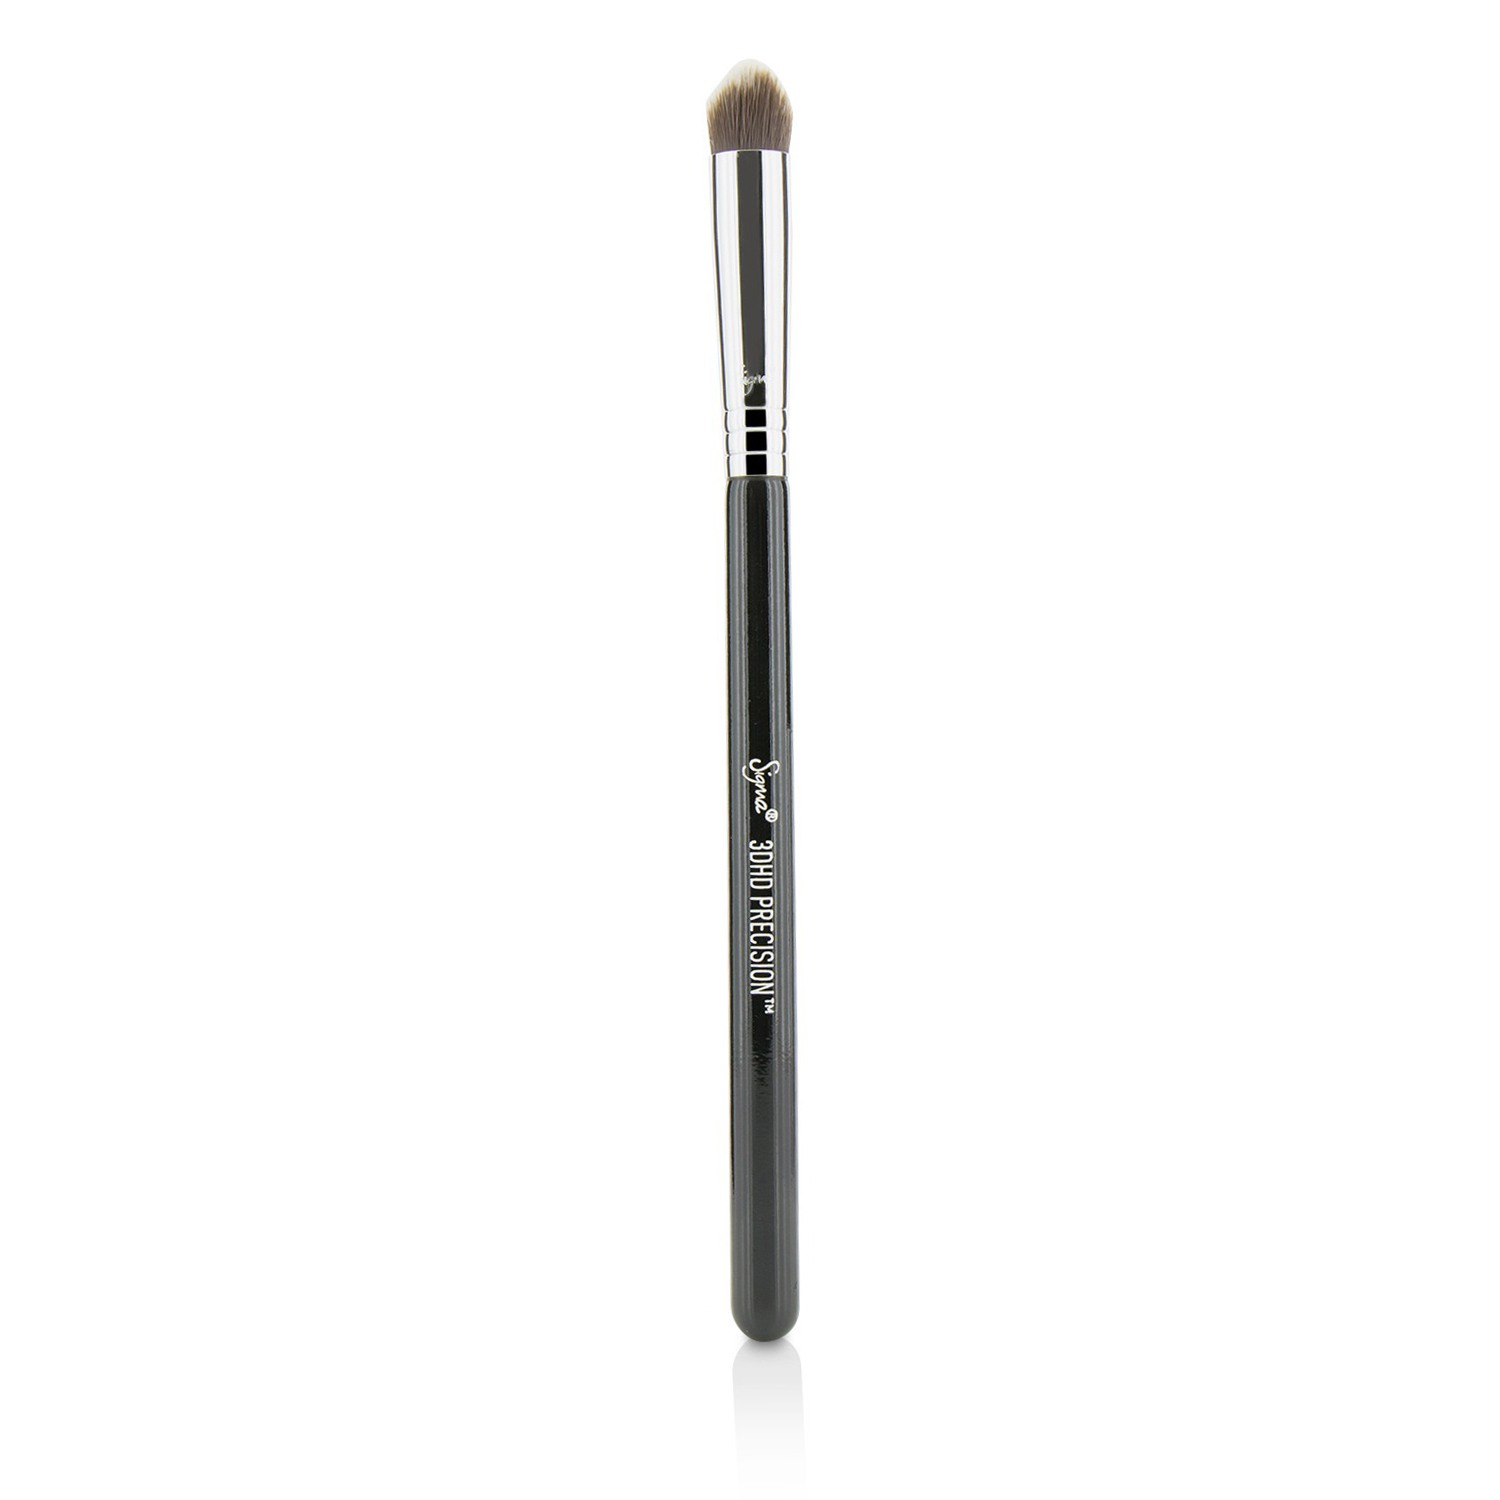 3DHD Precision Brush - # Black Sigma Beauty Image